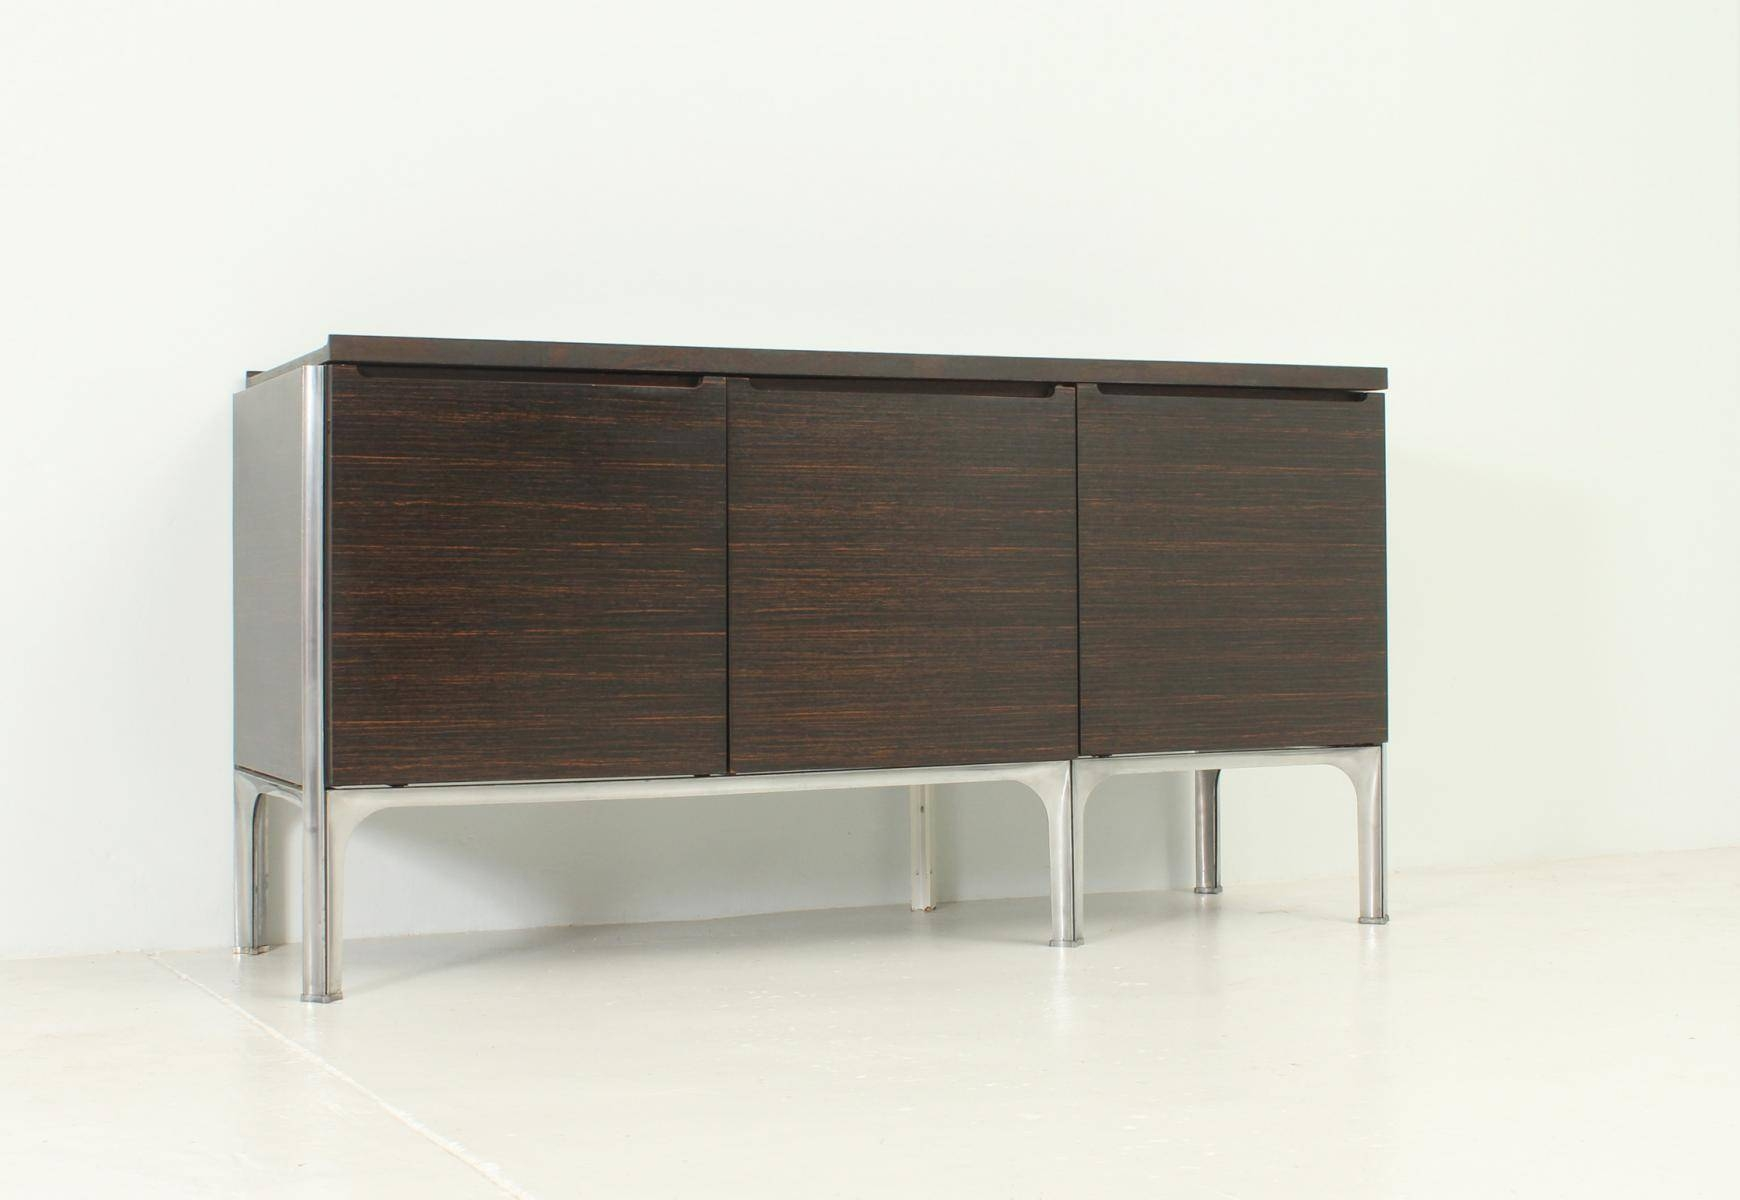 Macassar Ebony Wood Sideboardraymond Loewy For Df 2000 For Inside Newest Affinity Sideboards (View 9 of 15)